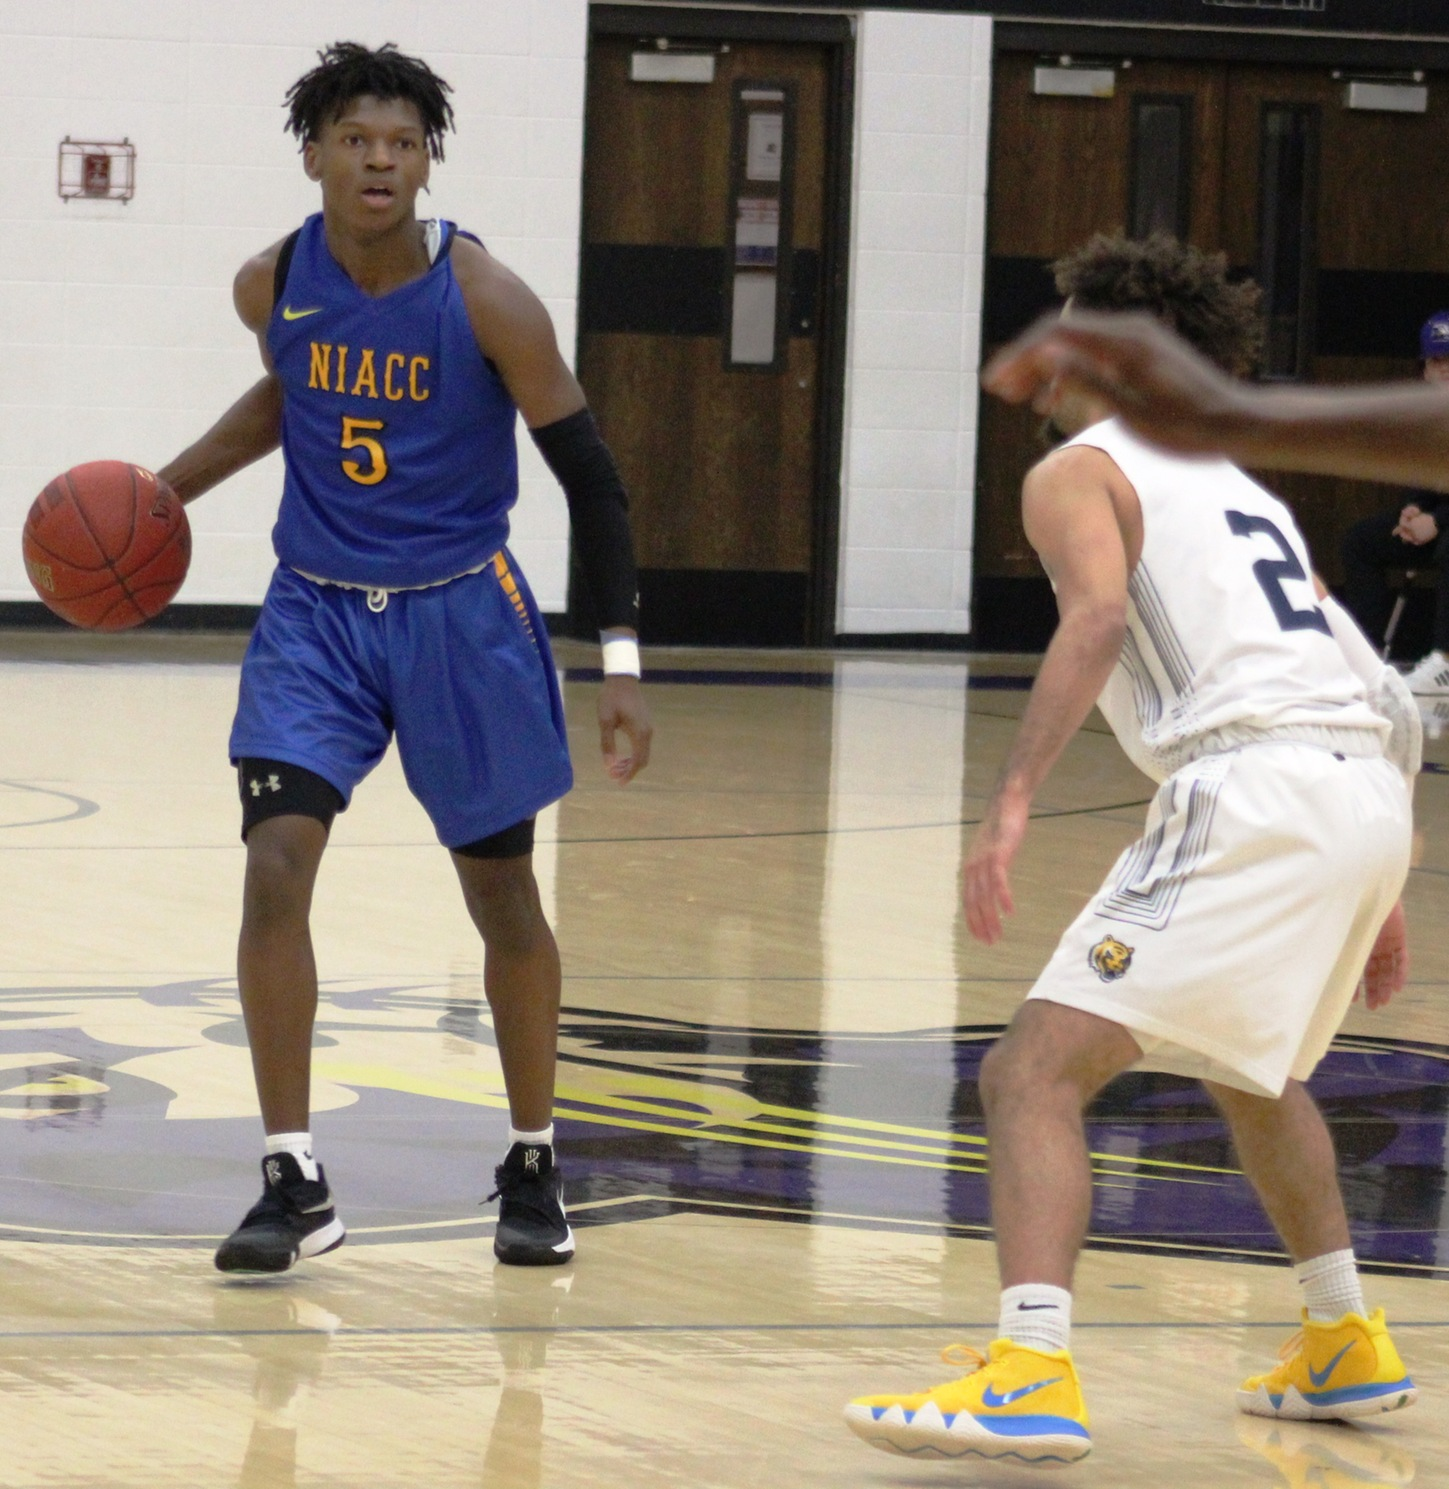 NIACC's Quentin Hardrict brings the ball up court against Marshalltown CC at the Dale Howard Classic earlier this season.